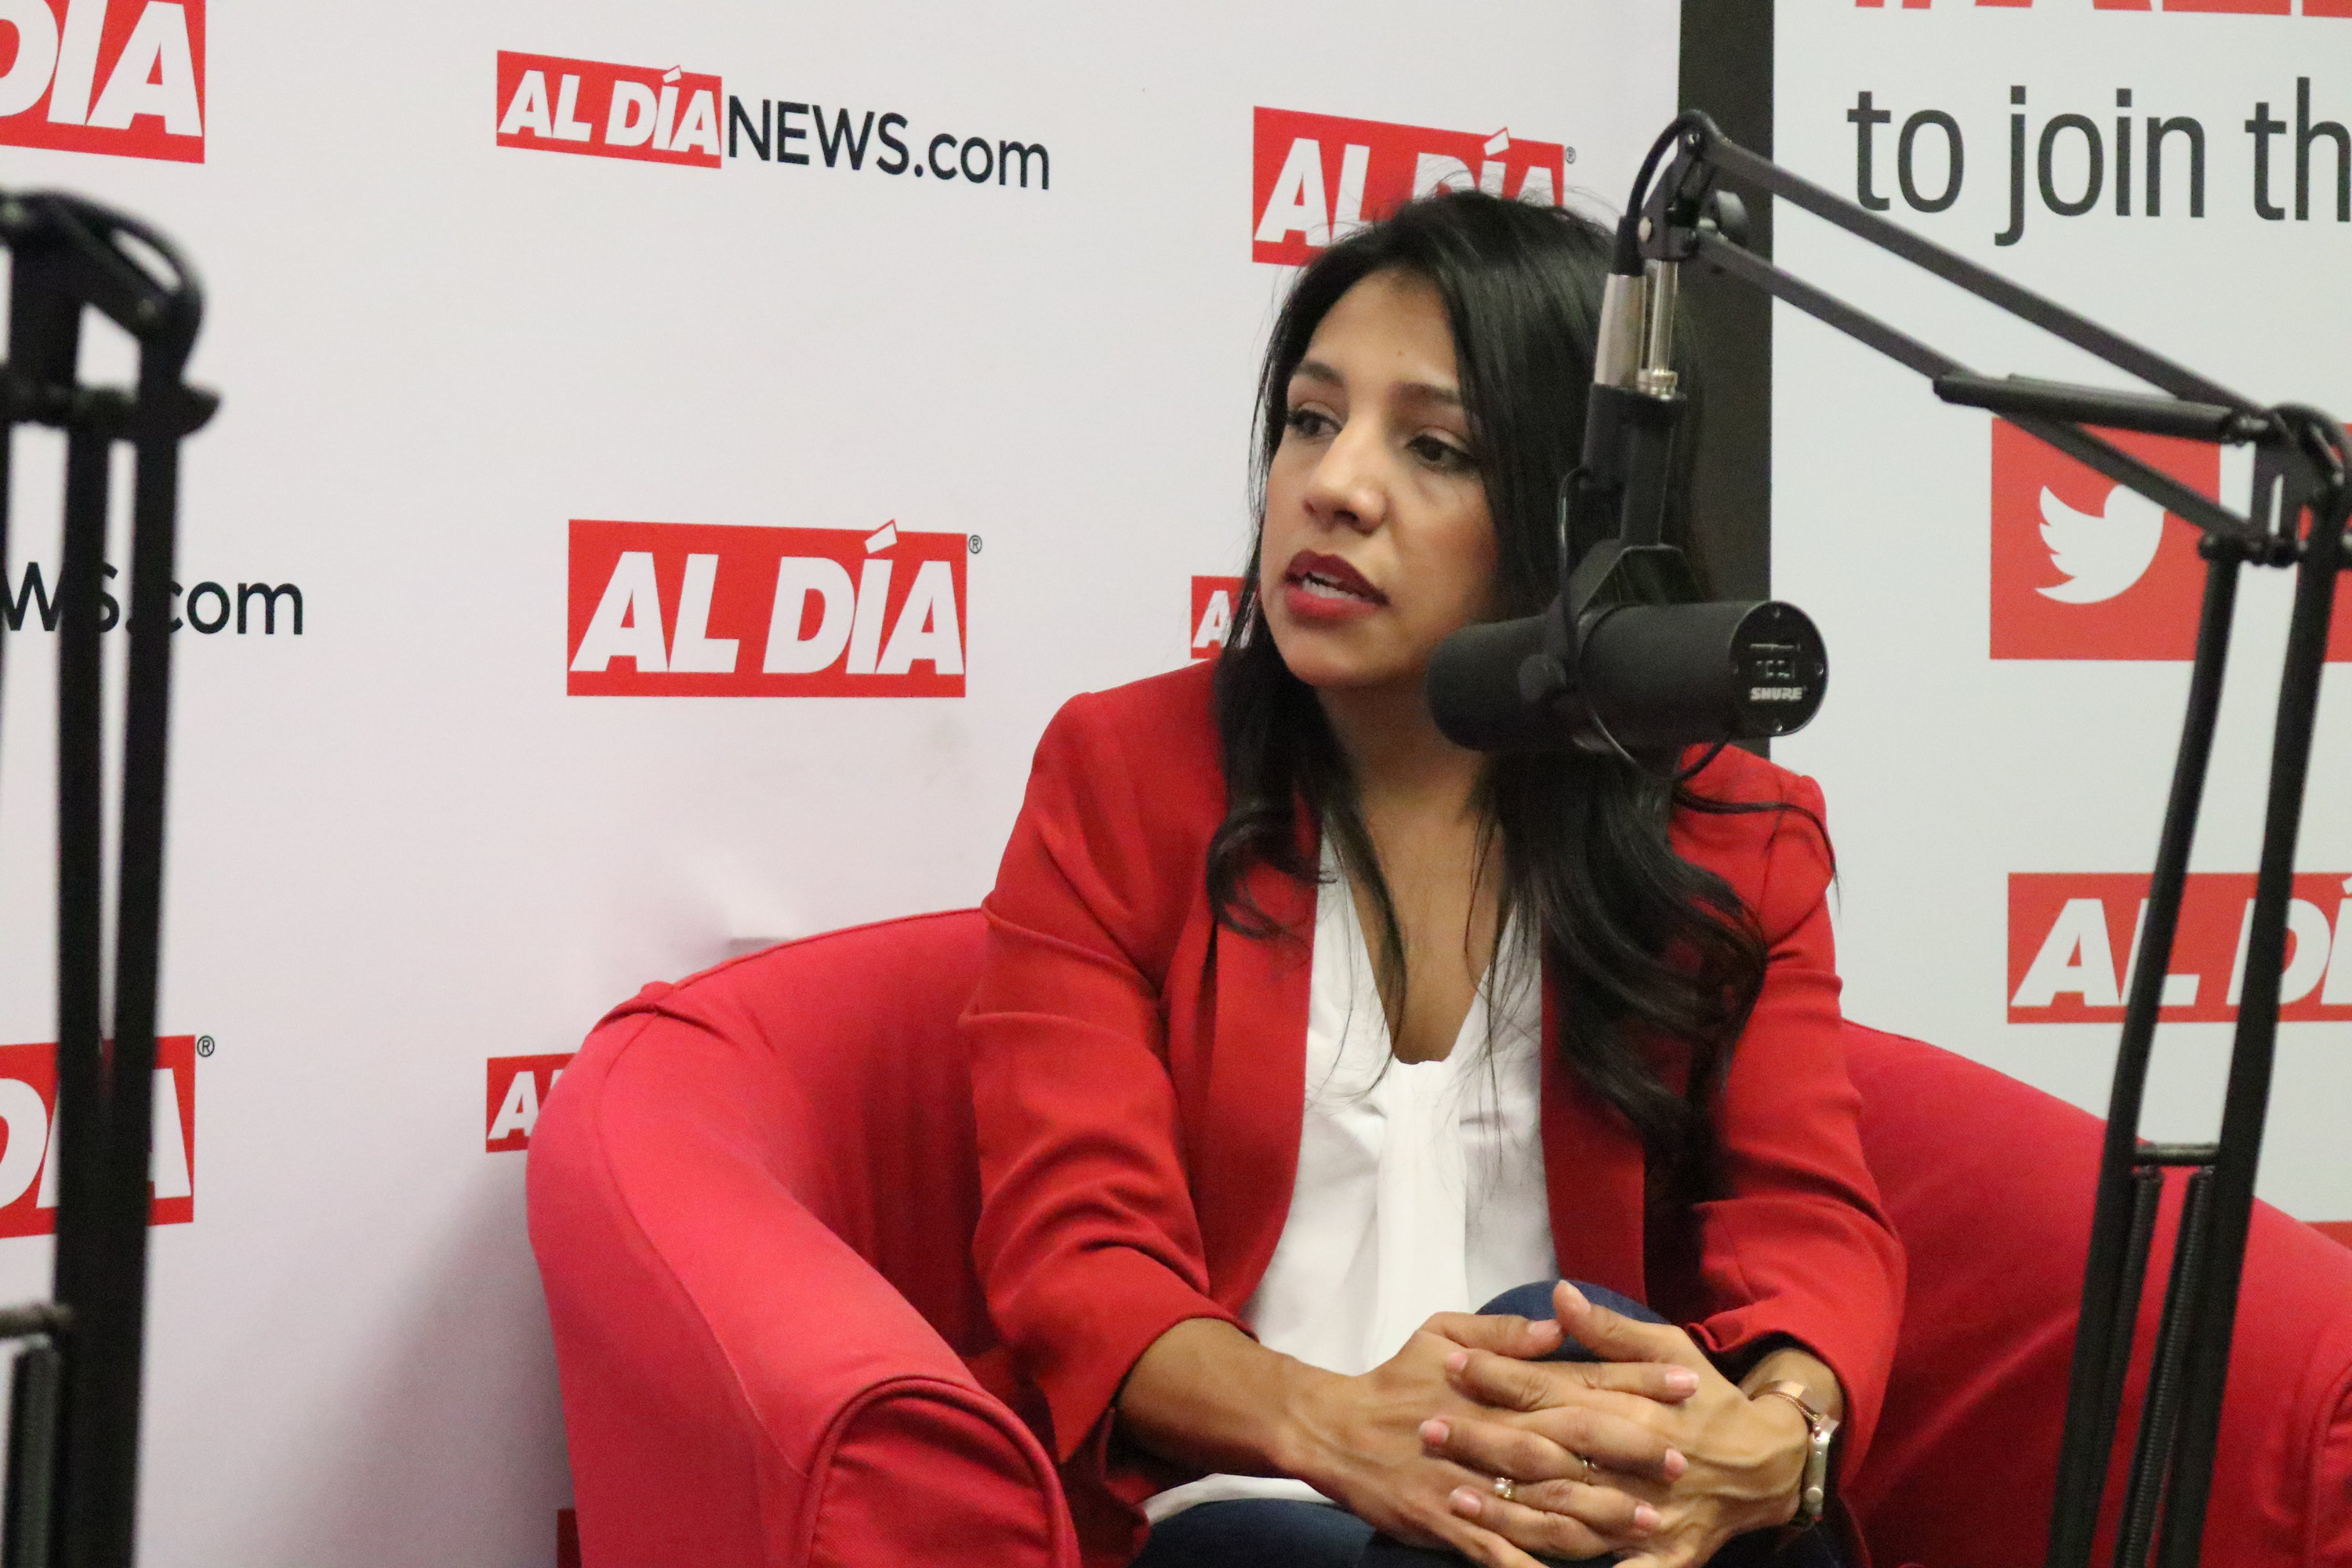 Adria Córdova visited the AL DÍA newsroom to talk about her life, career and journey on Nov. 19. Photo: Nigel Thompson/AL DÍA News.